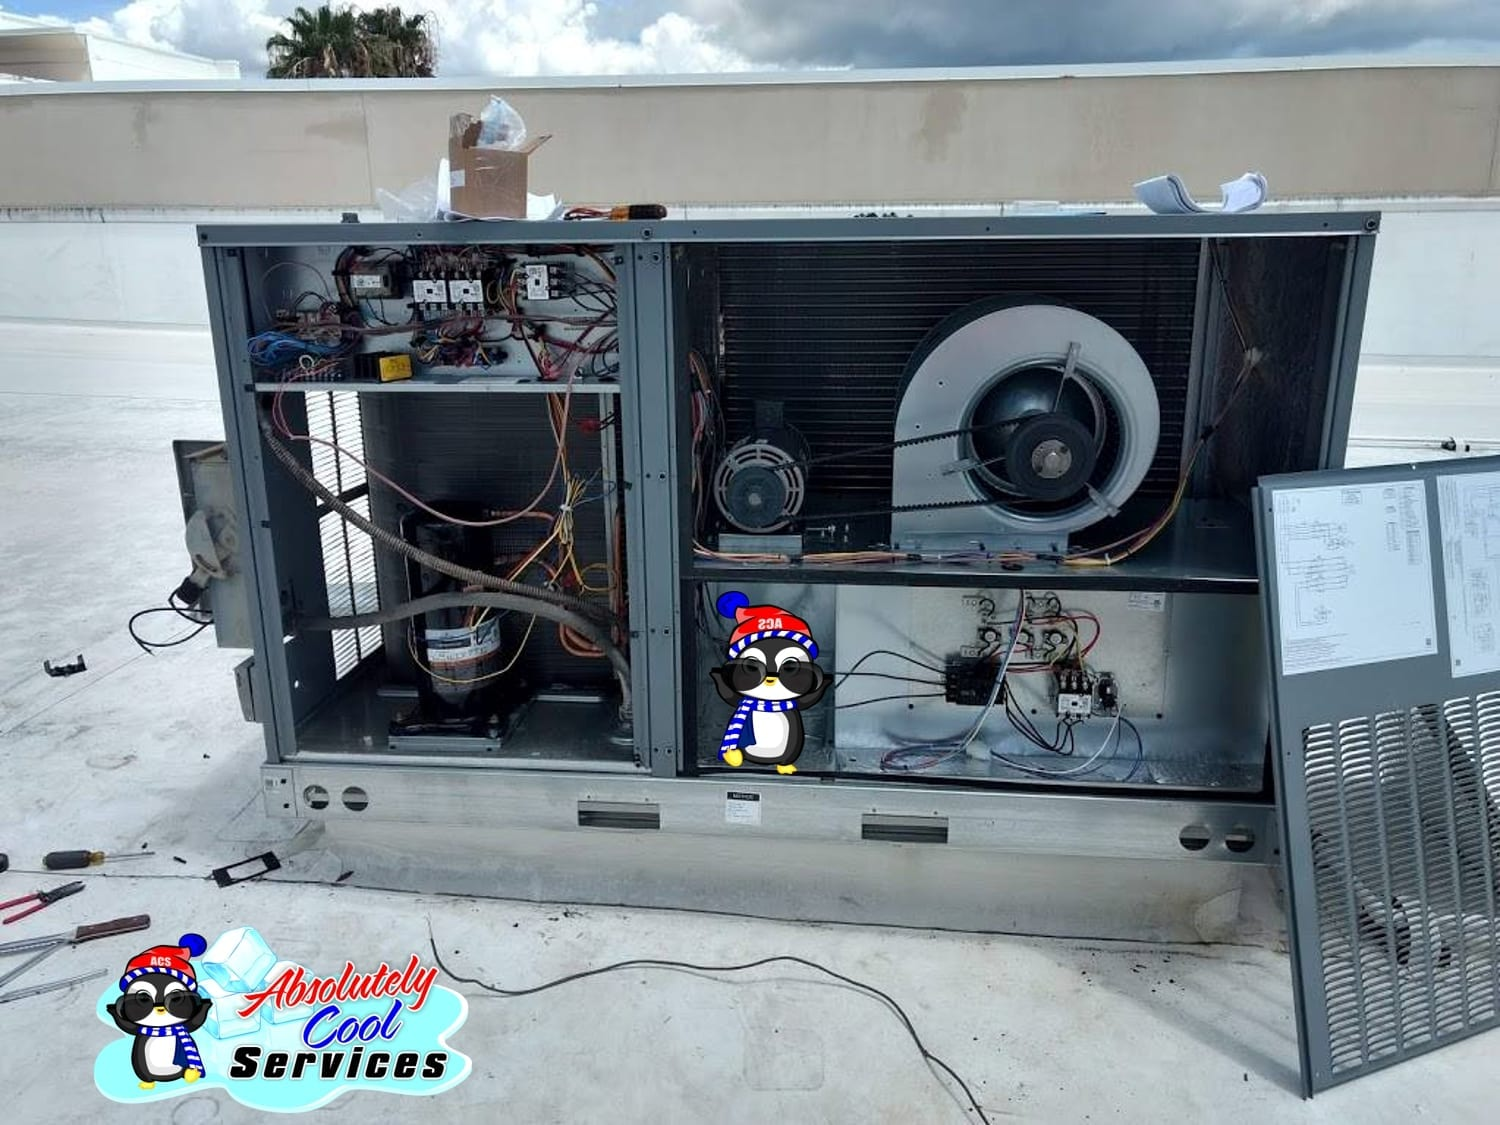 Roof Air Conditioning | HVAC Installation Company near Palm Beach Gardens